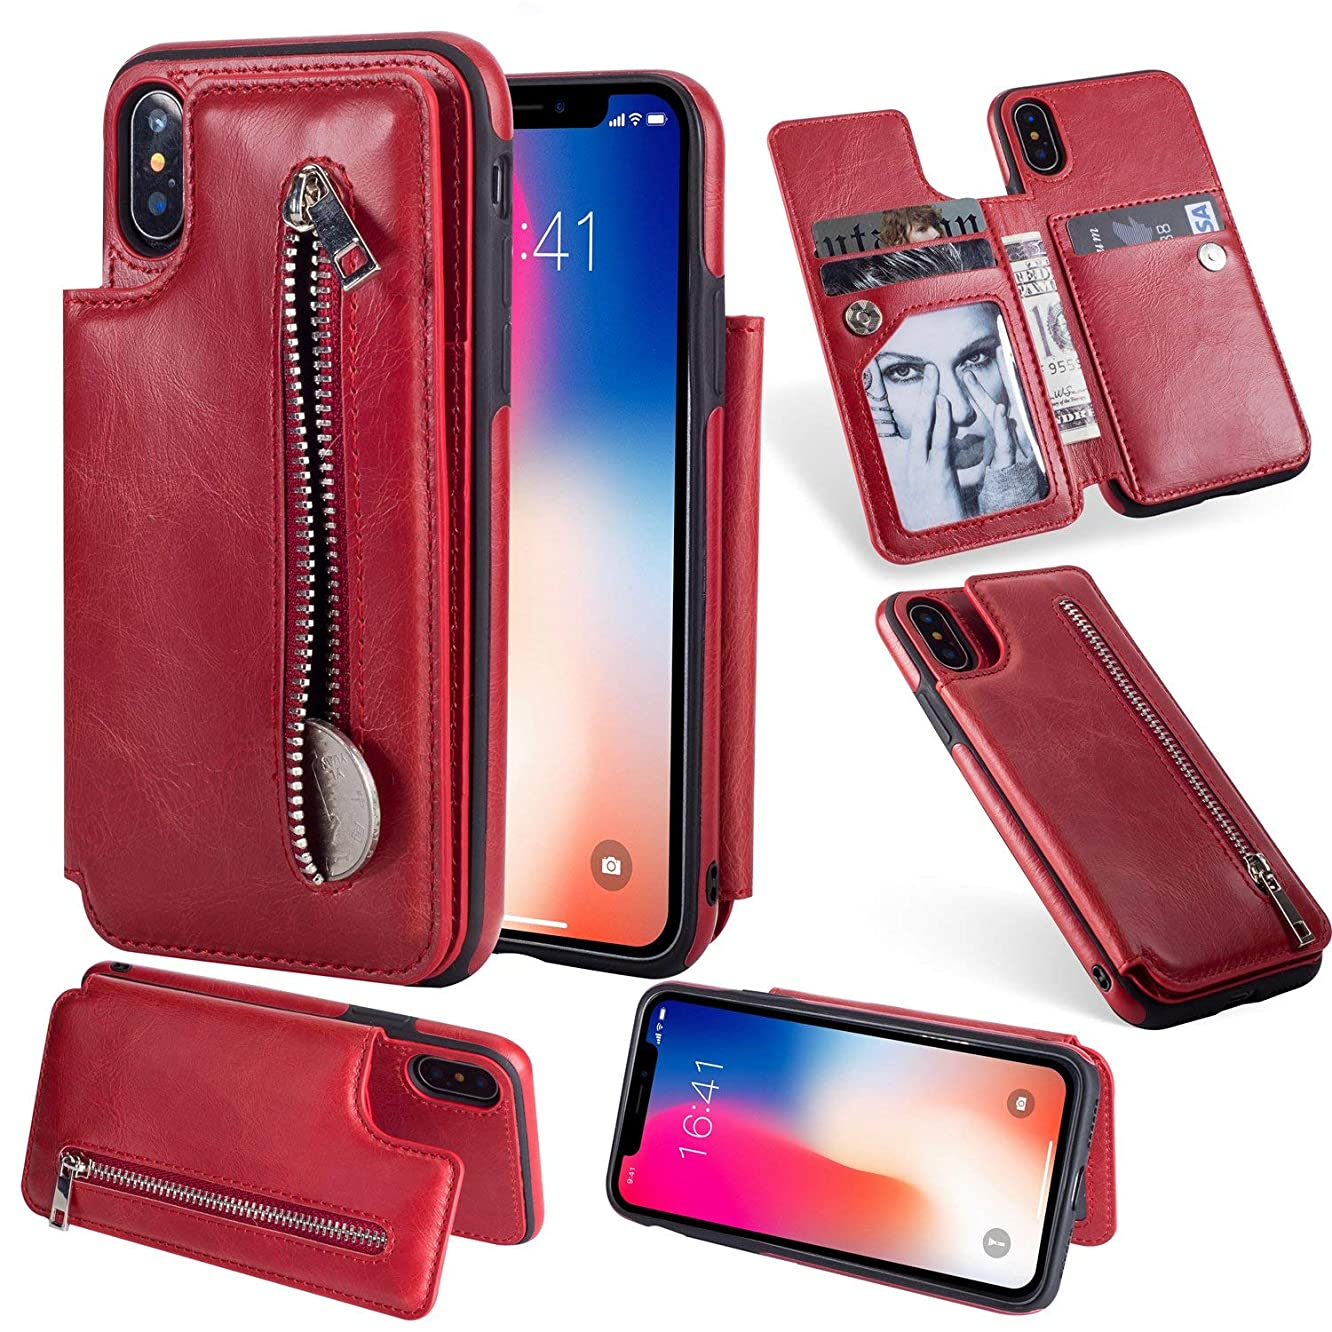 Jennyfly iPhone XR Purse Case, Fashion Zipper Magnetic Closure Wallet Design Premium Durable Leather Zipper Protective Cover with Card Slots & Money Pocket for iPhone XR 6.1 Inch - Red